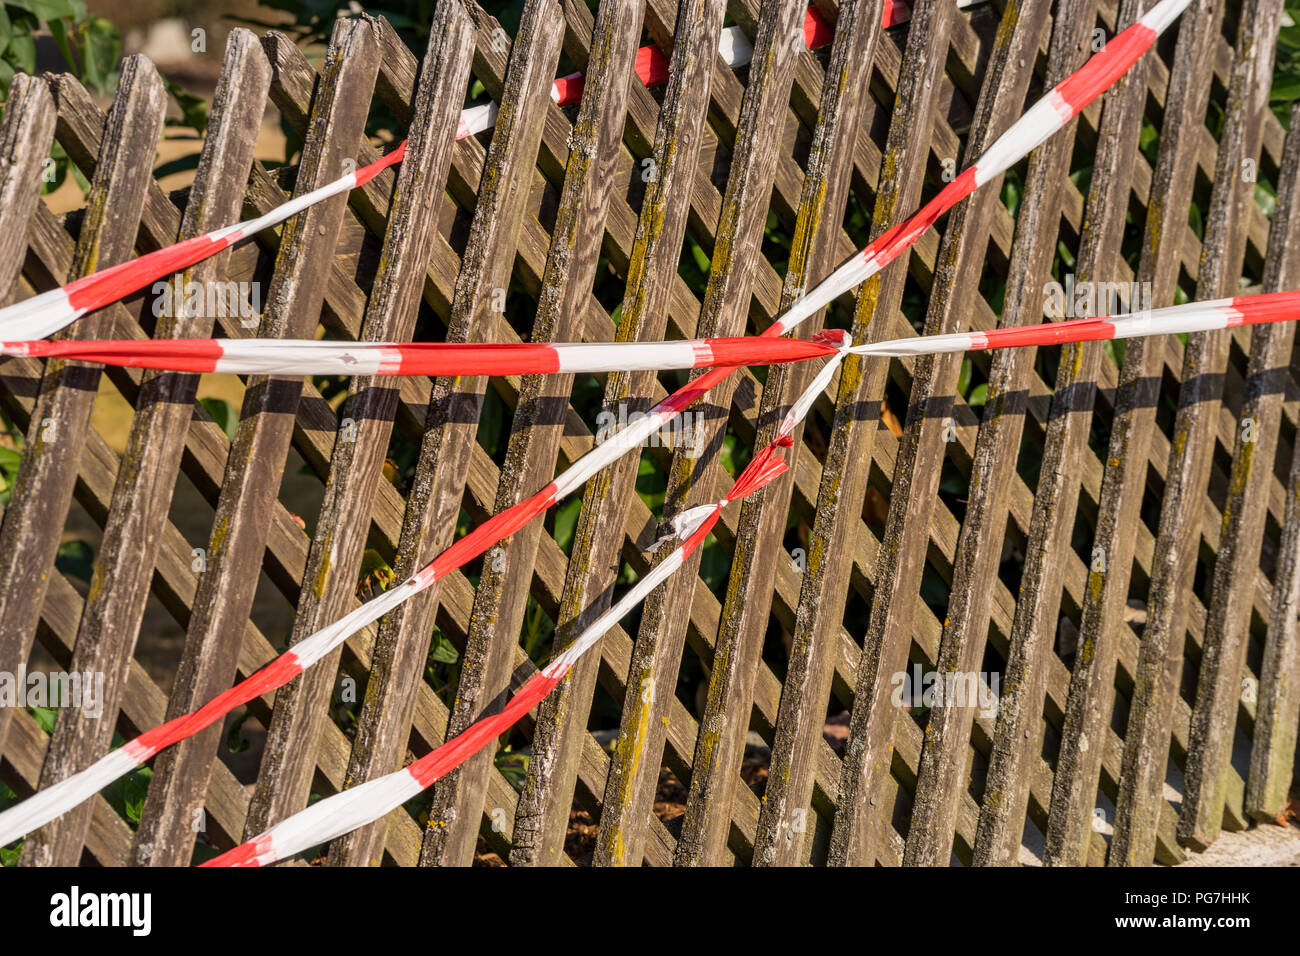 Red and white ribbon barriers at the wooden fence - Stock Image